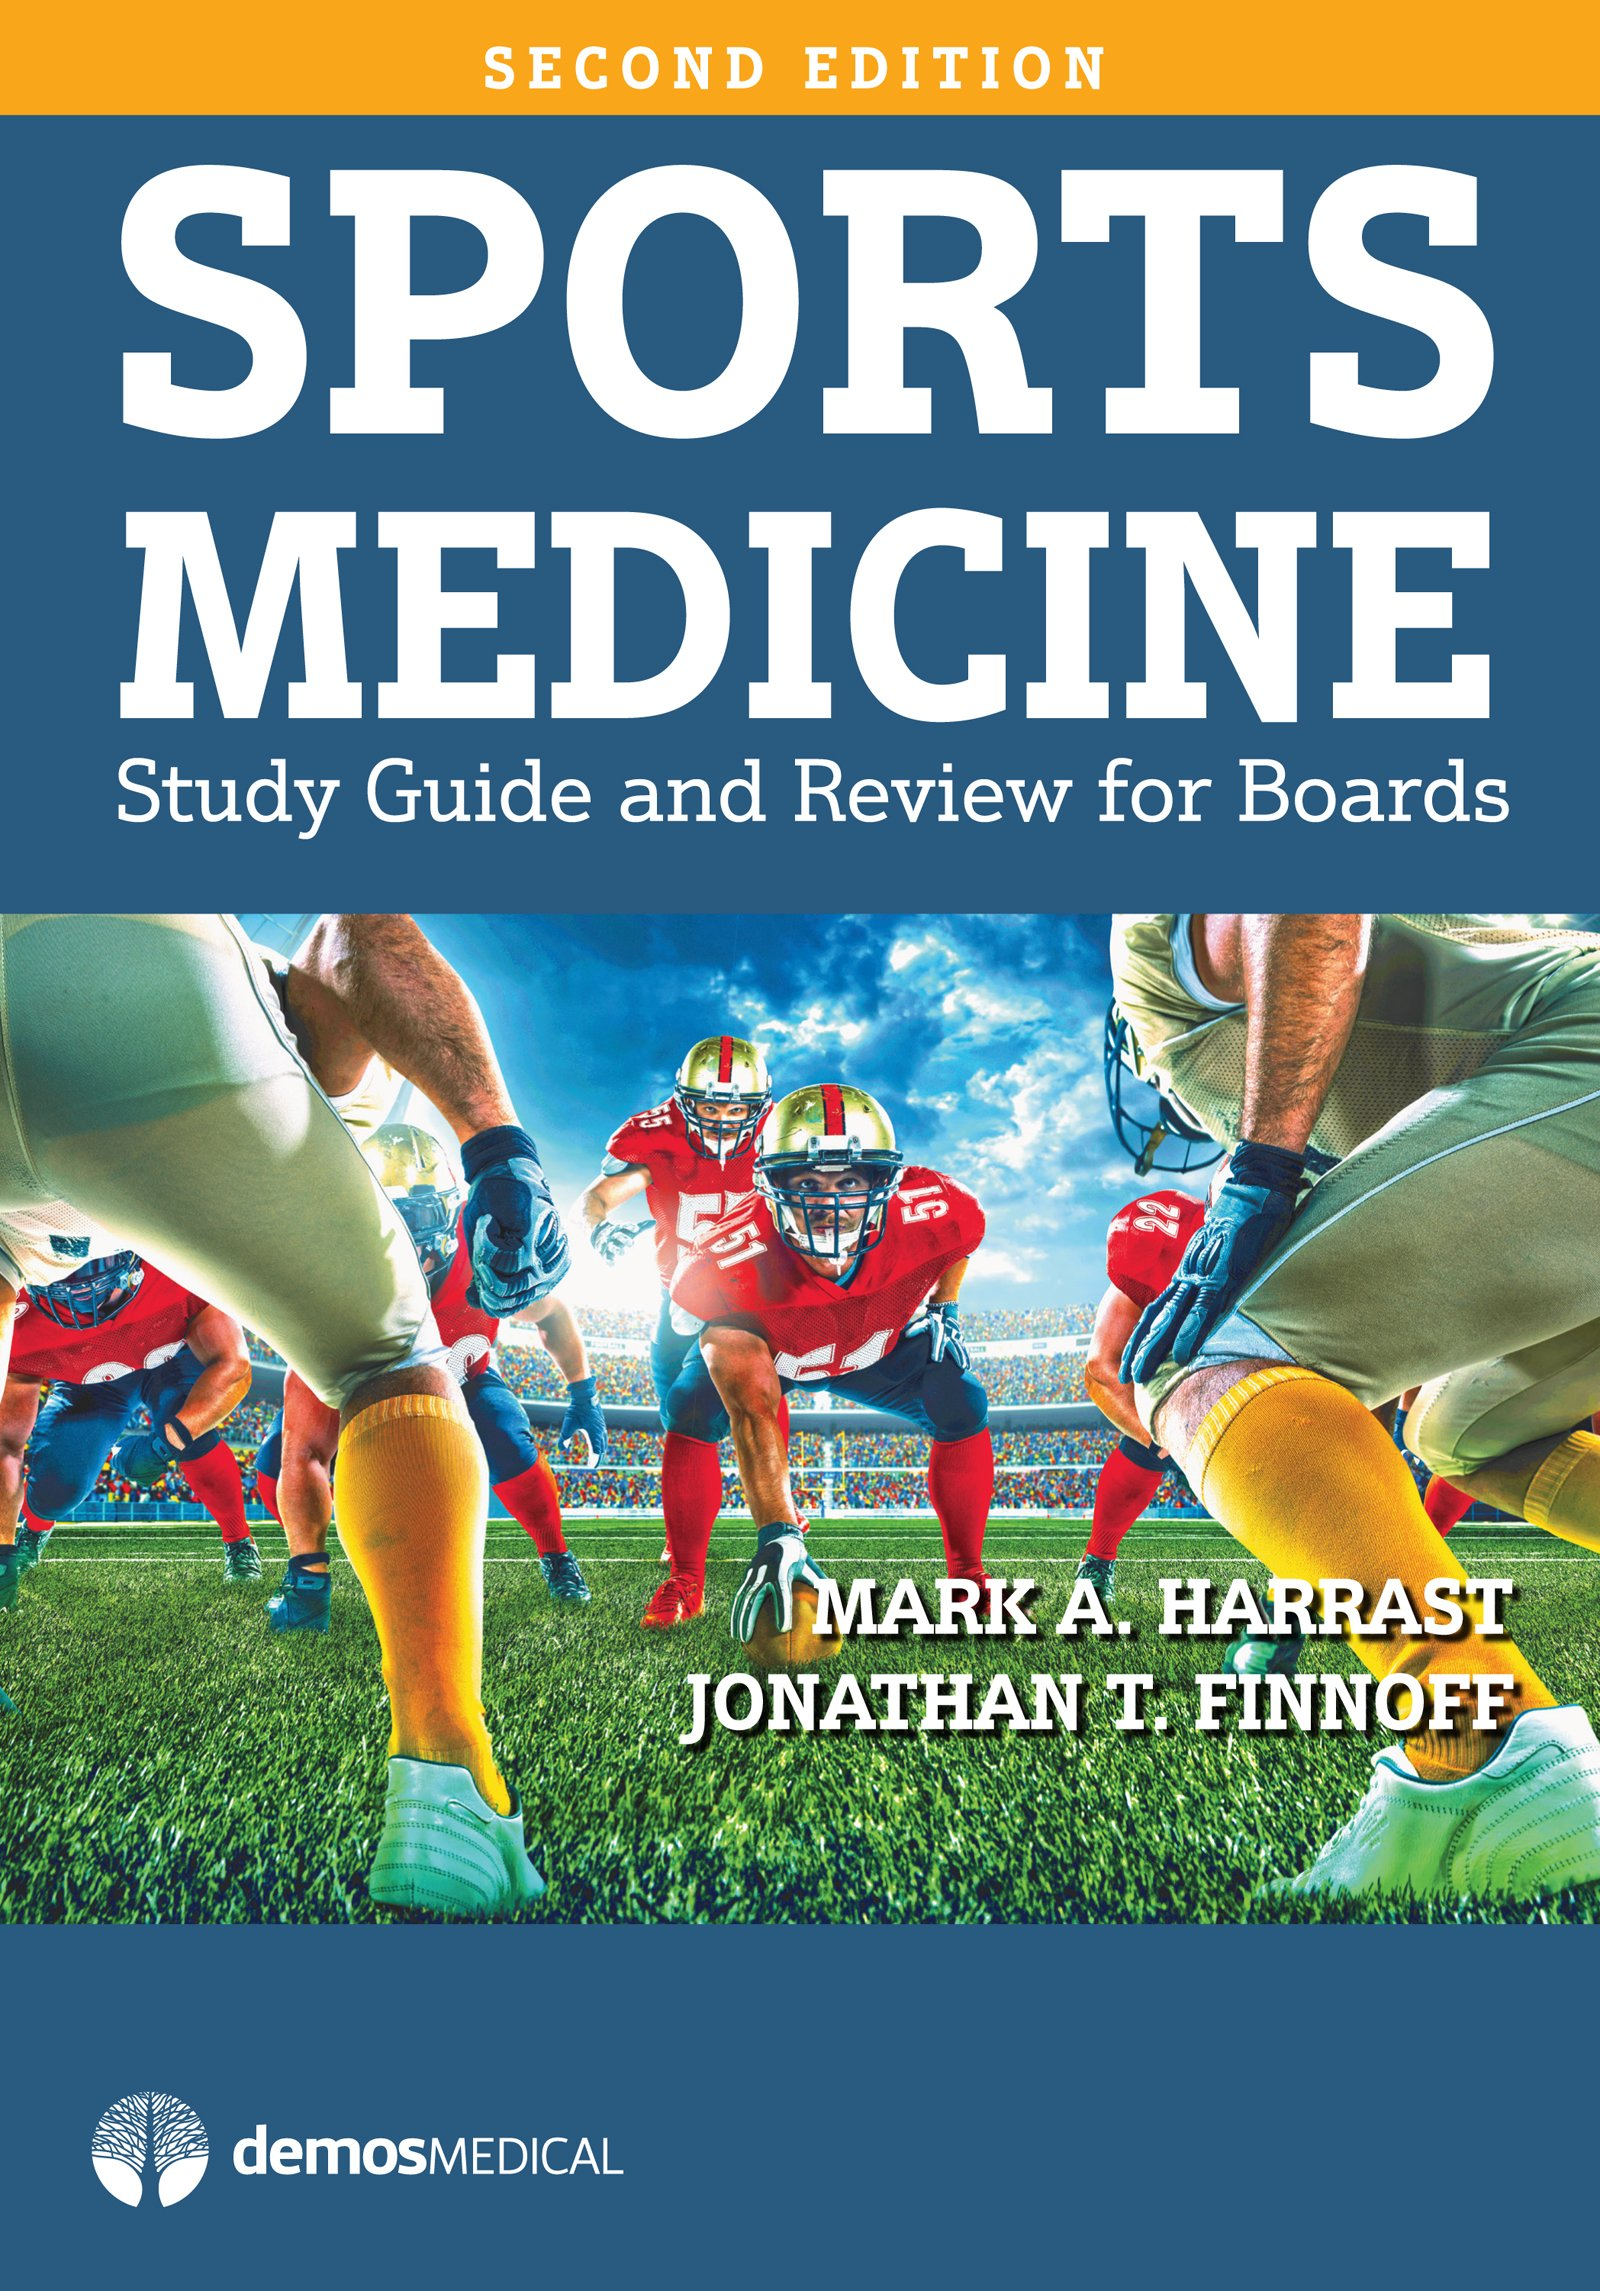 Sports Medicine: Study Guide and Review for Boards: Mark A. Harrast MD,  Jonathan T. Finnoff DO: 9781620700884: Physical Medicine & Rehabilitation:  Amazon ...